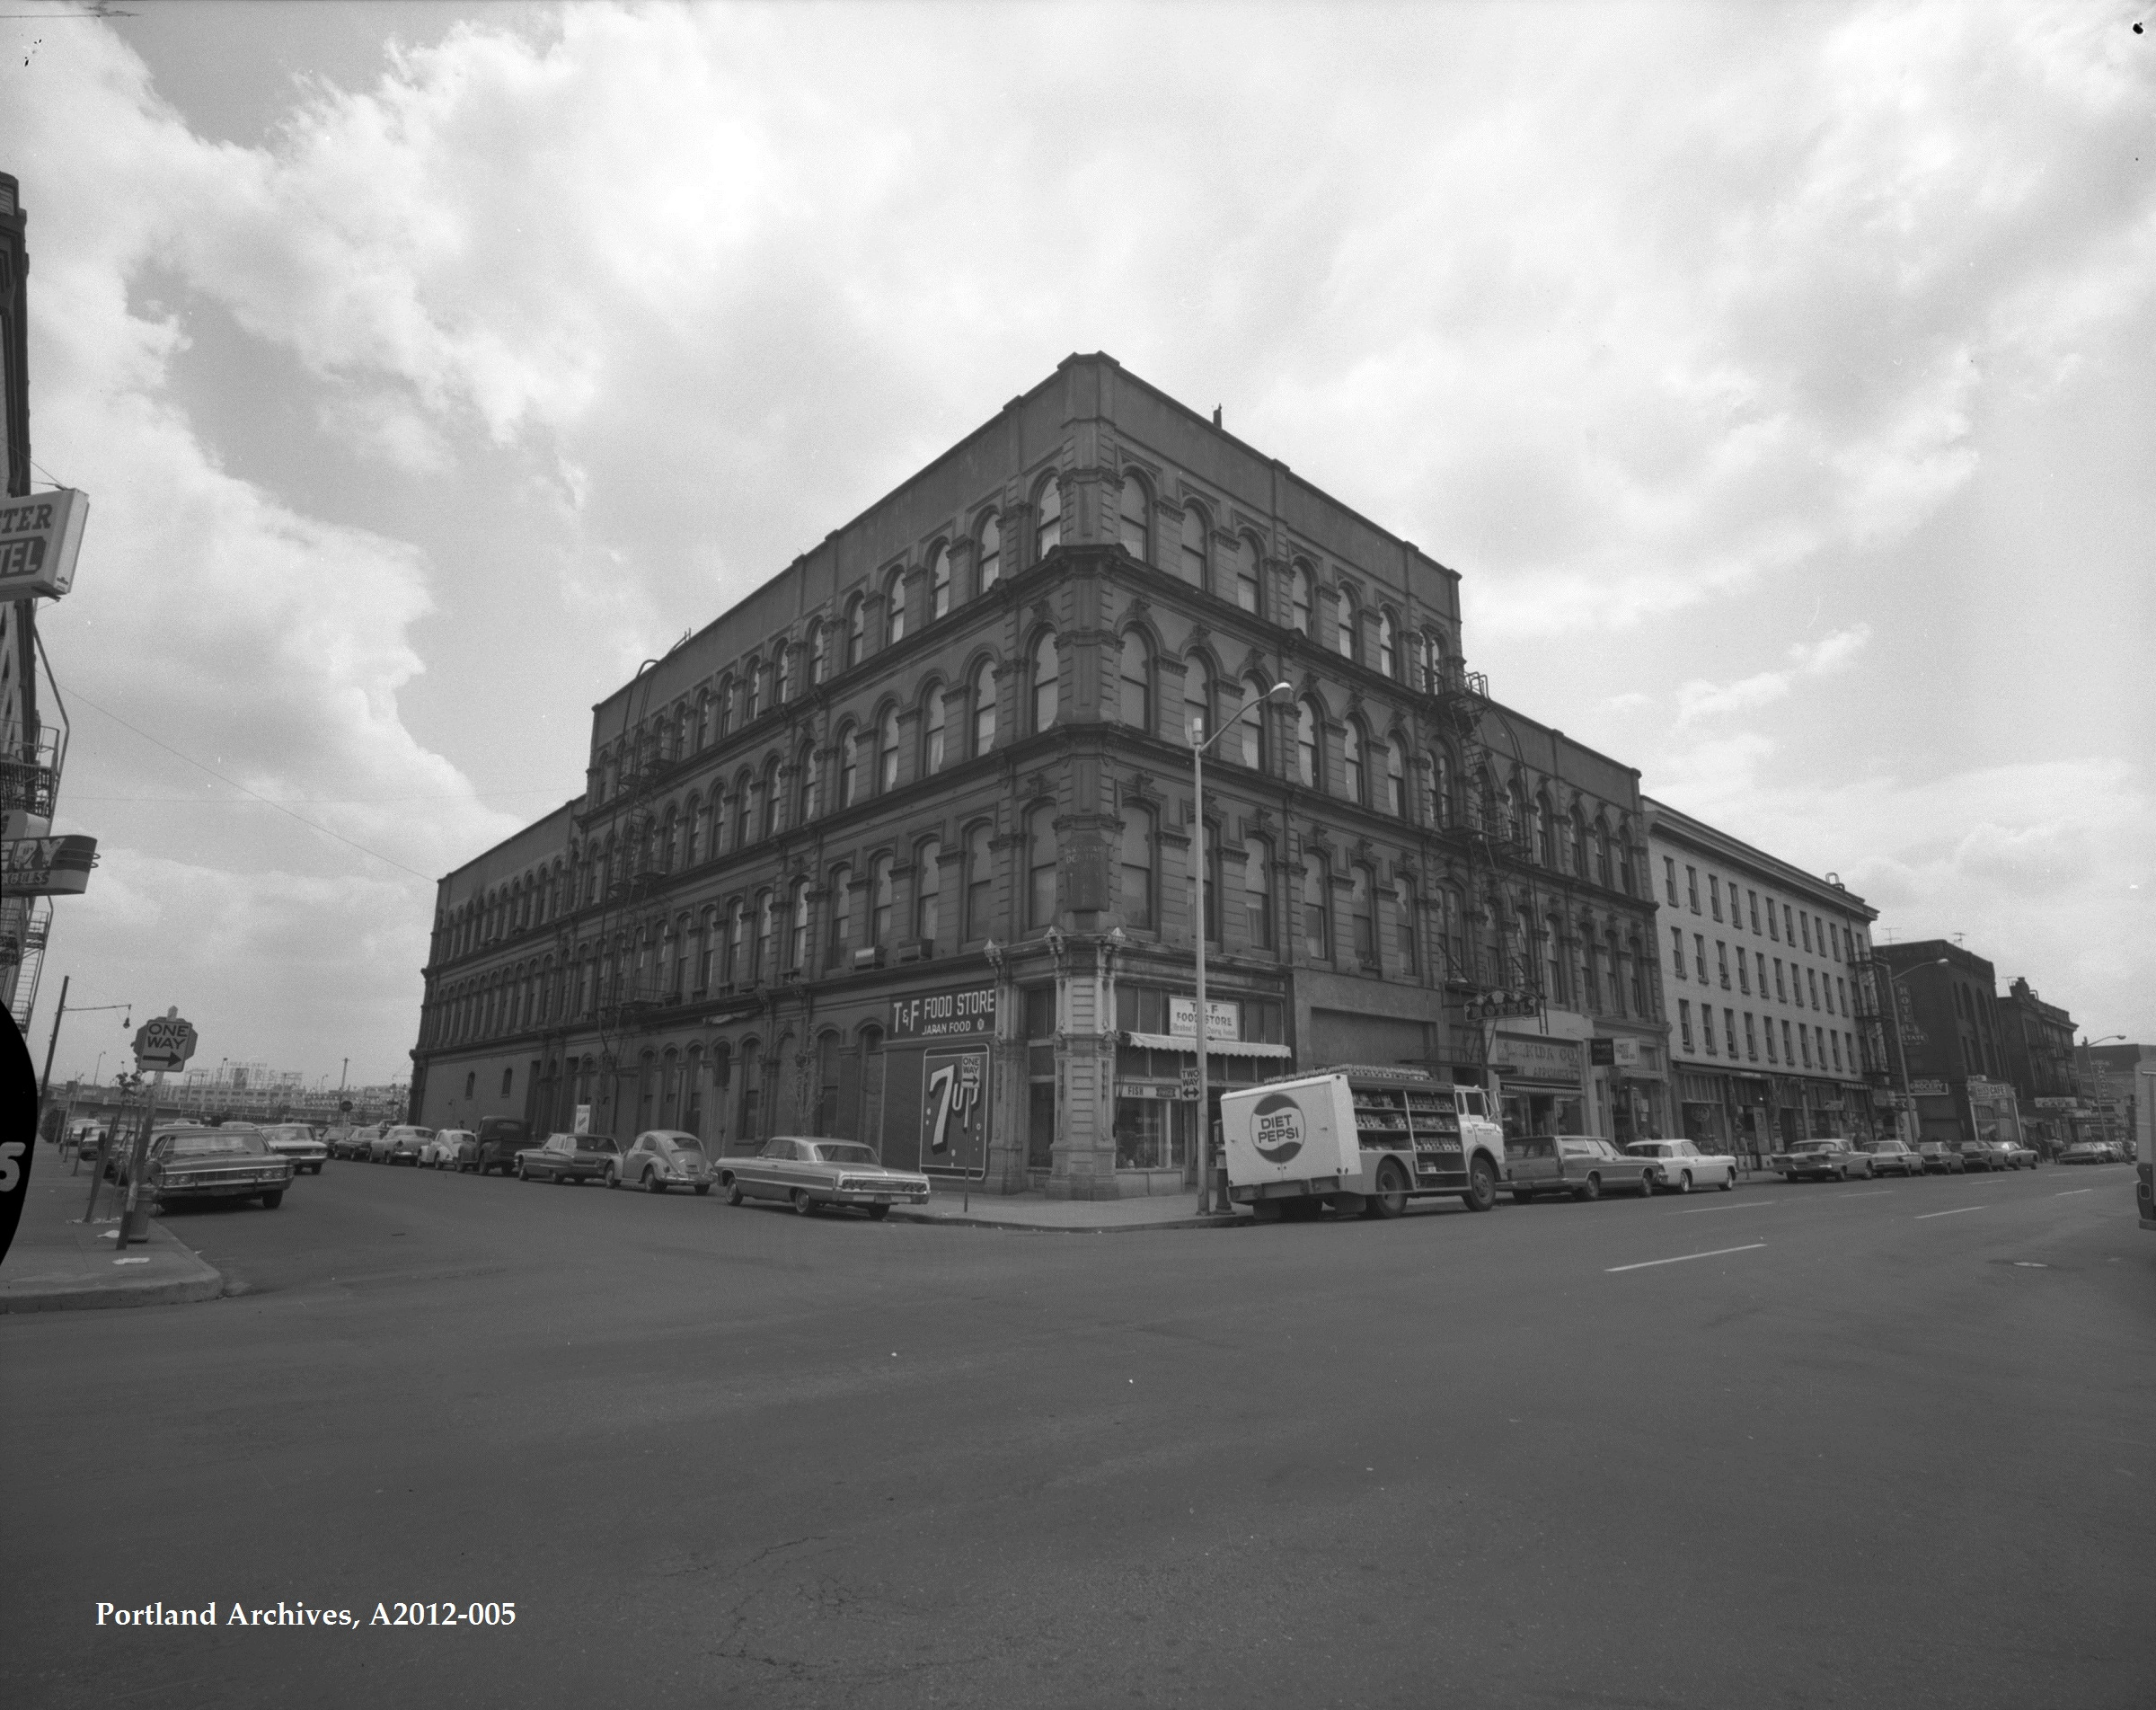 City of Portland Archives, Oregon, Building at NW 3rd Avenue and NW Davis Street, A2012-005, 1968.